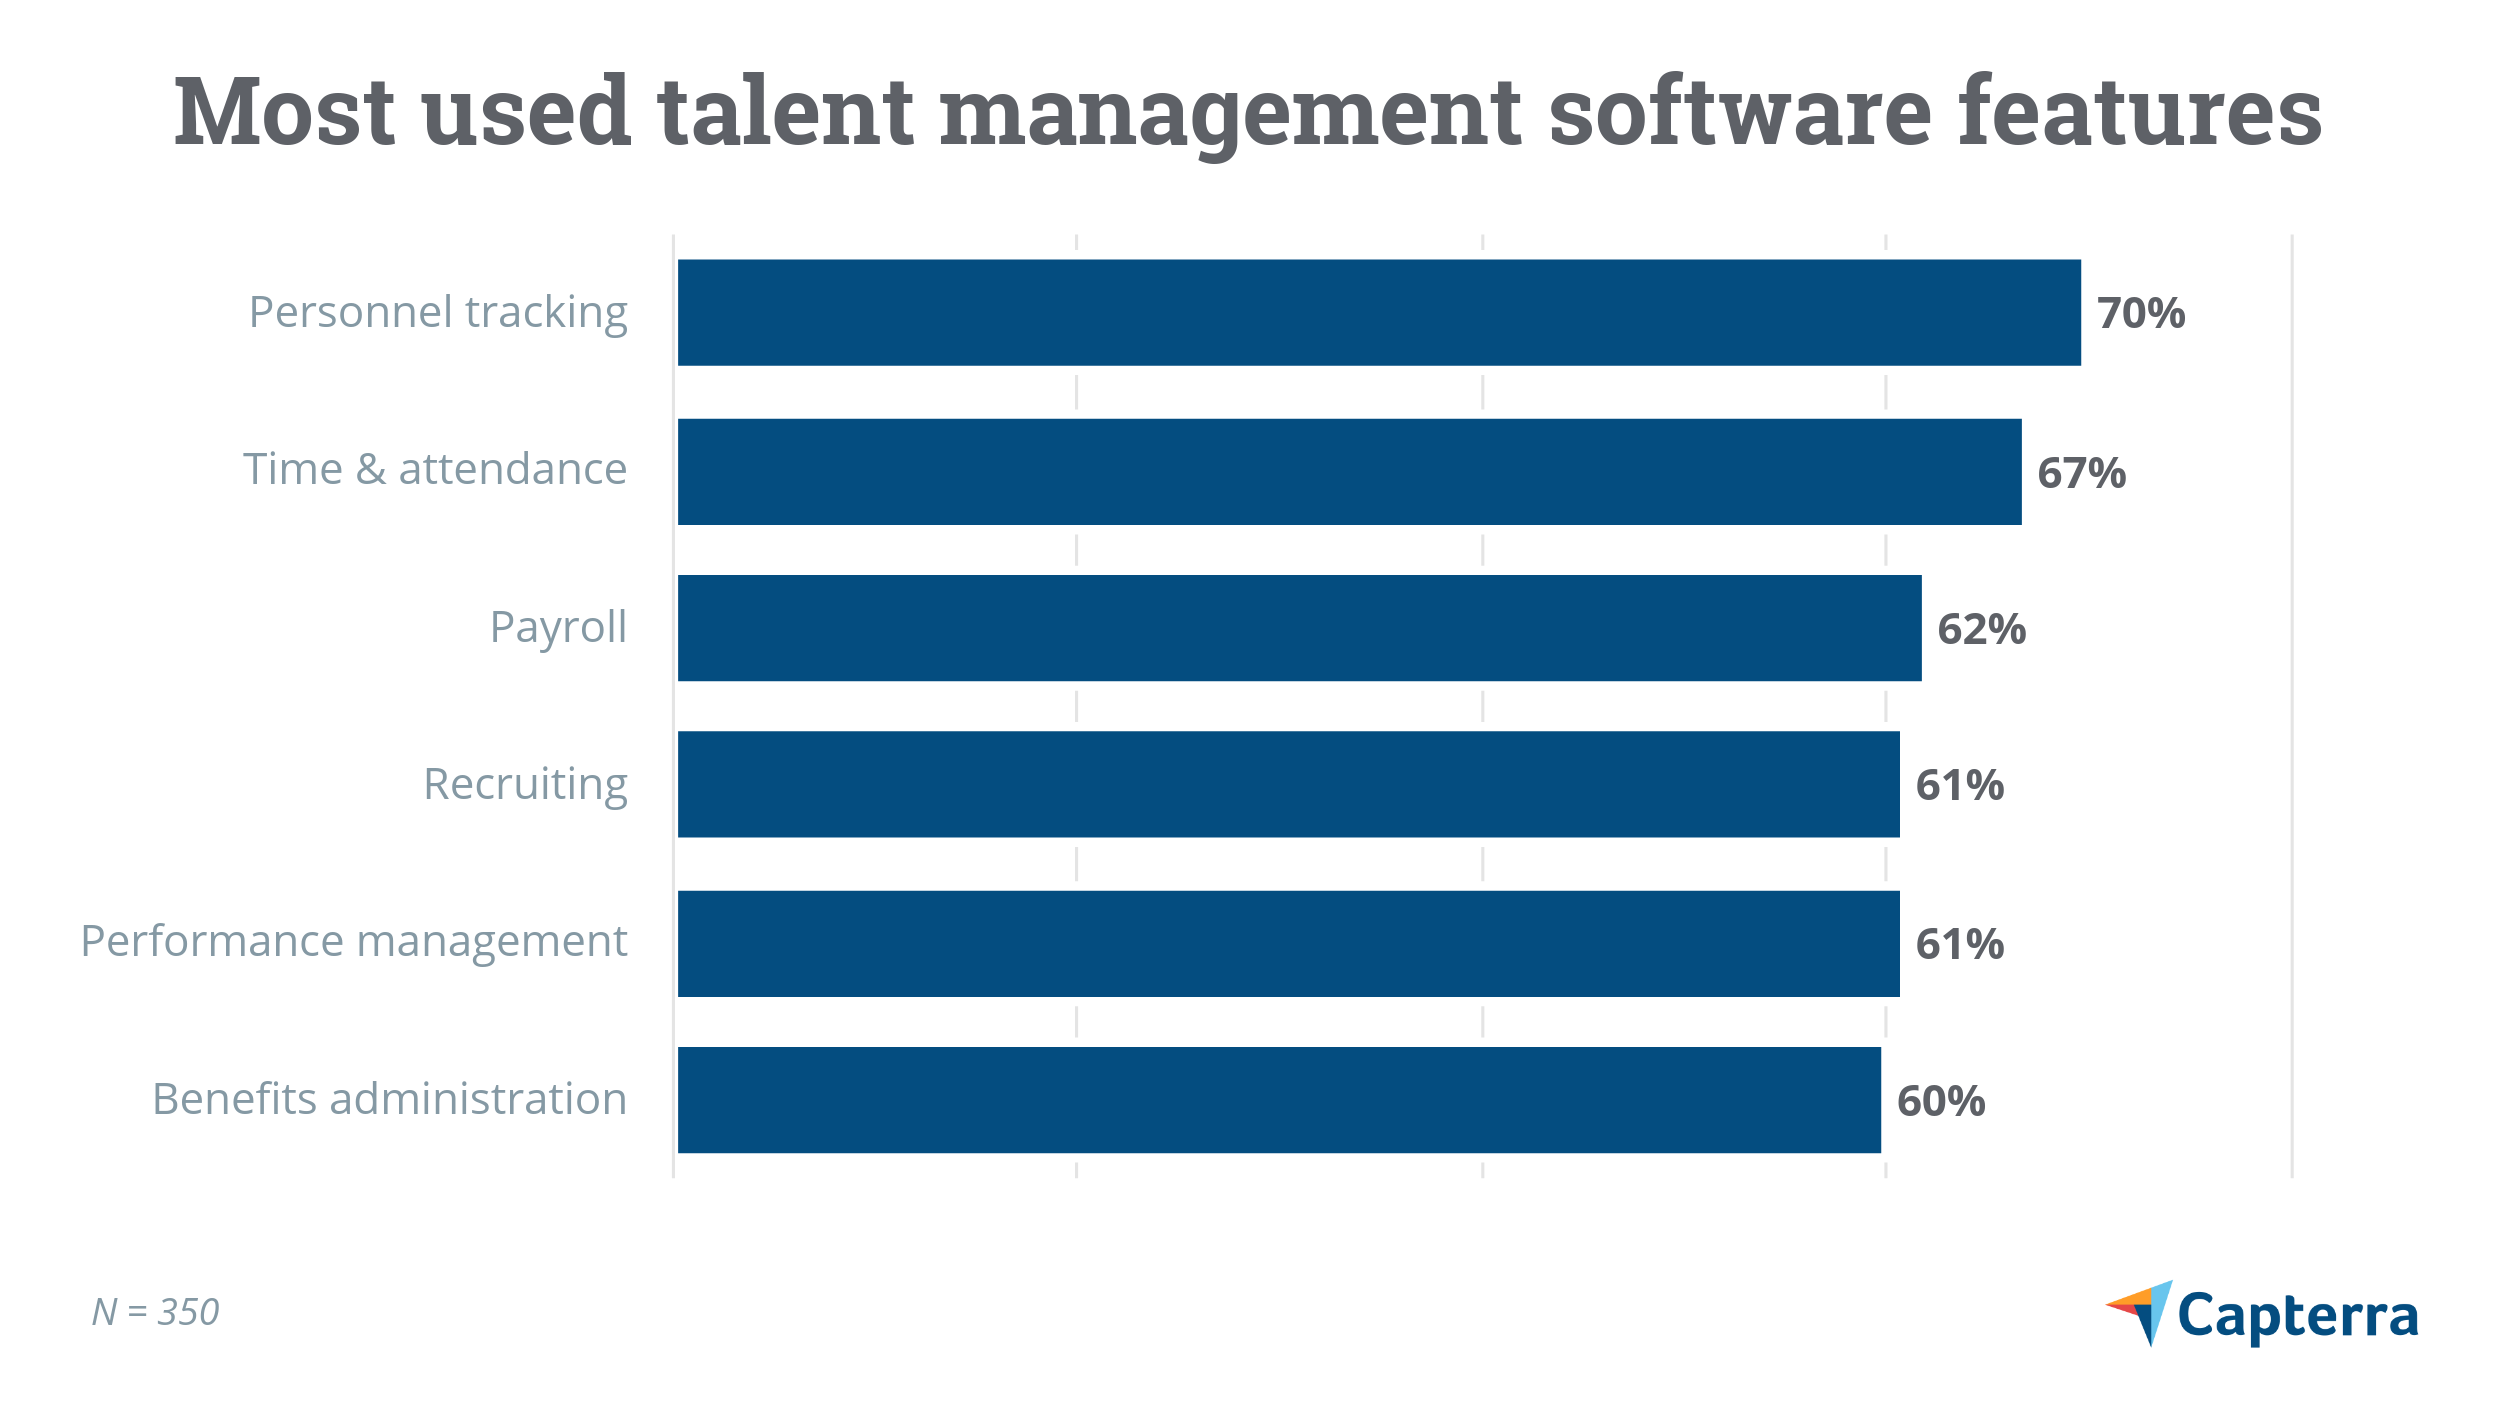 Most used talent management software features